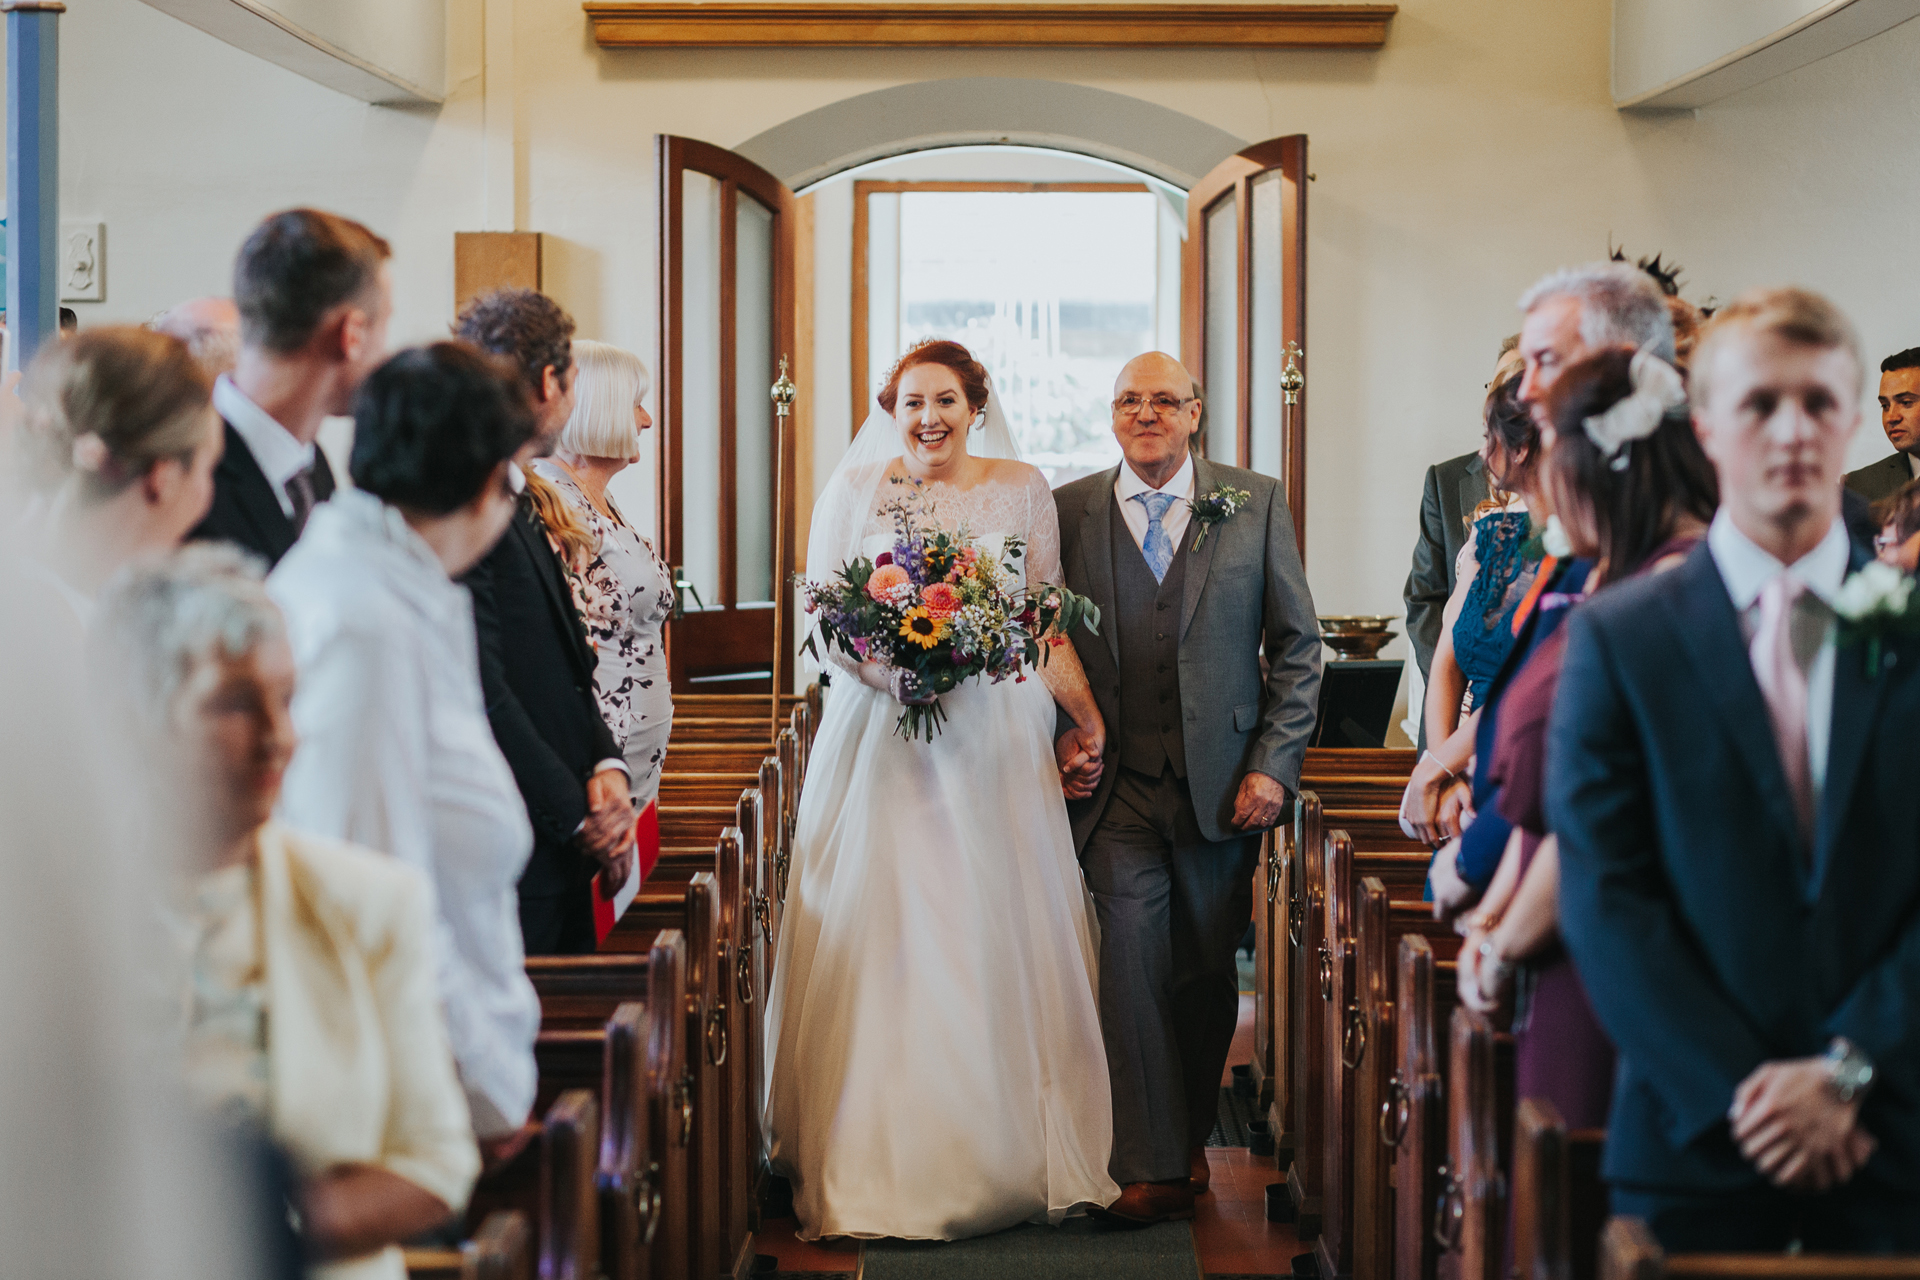 Bride walks down the aisle with her father.